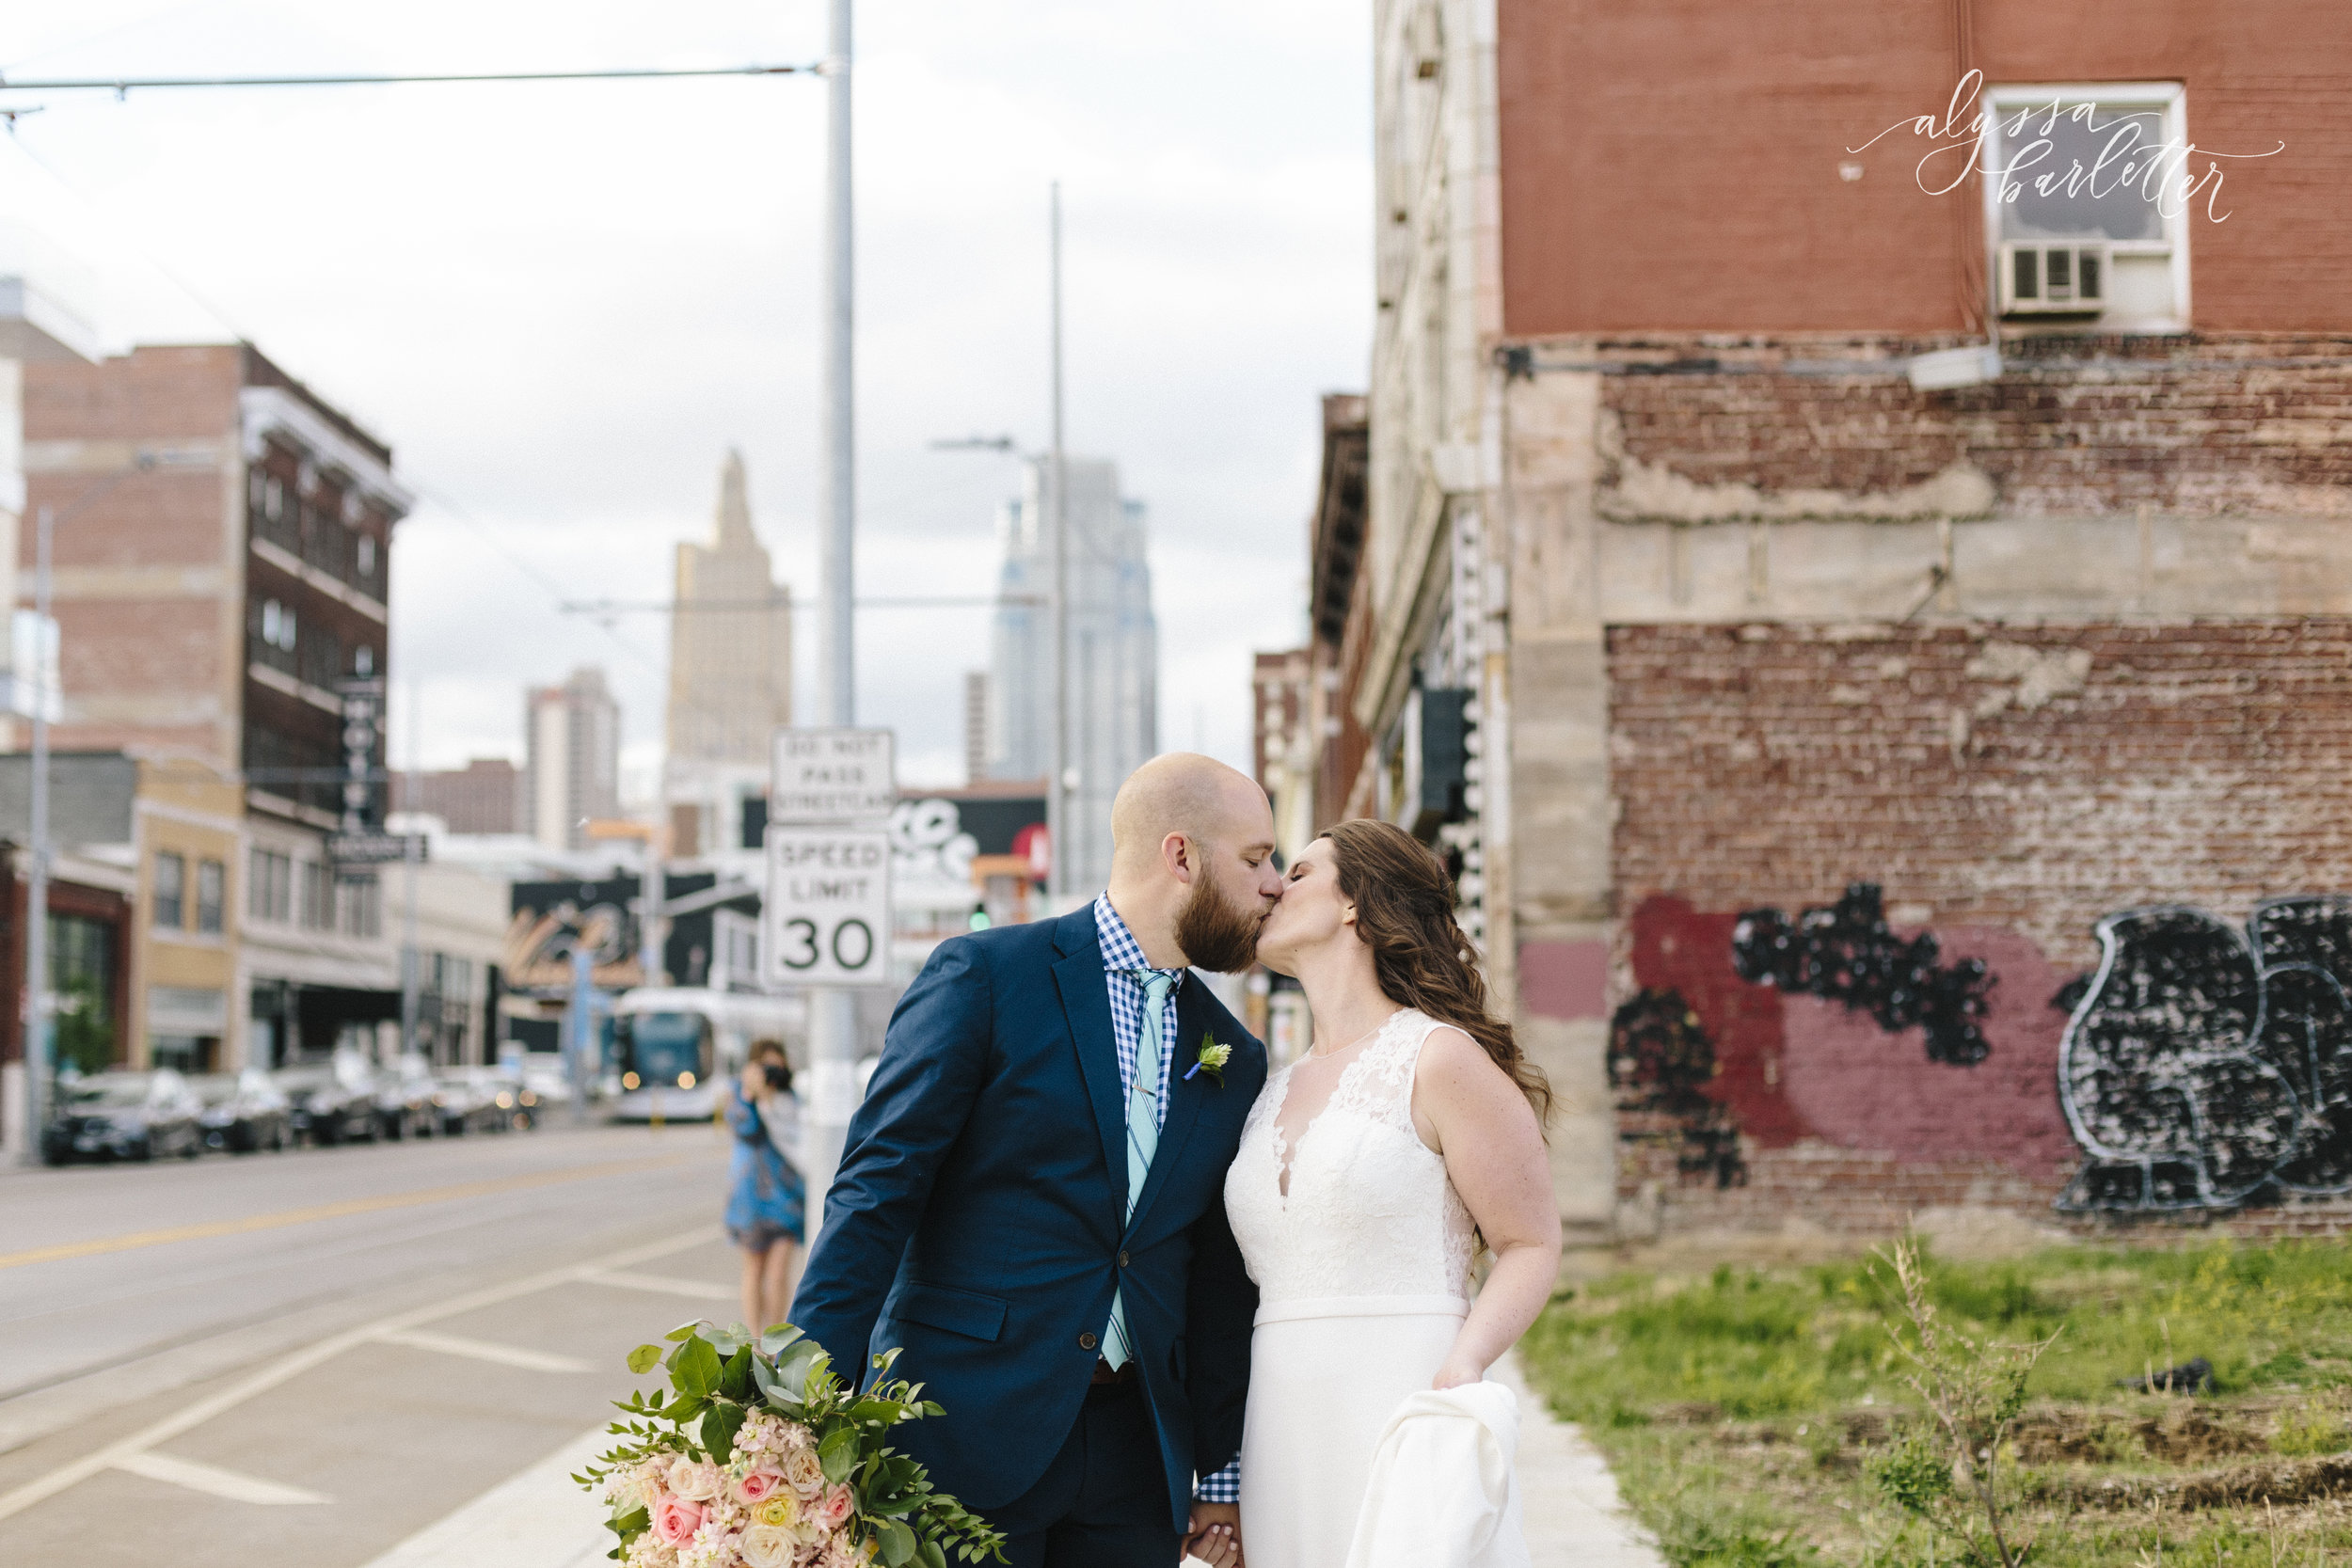 alyssa barletter photography kansas city wedding 2016 main courtney and brian-1-38.jpg